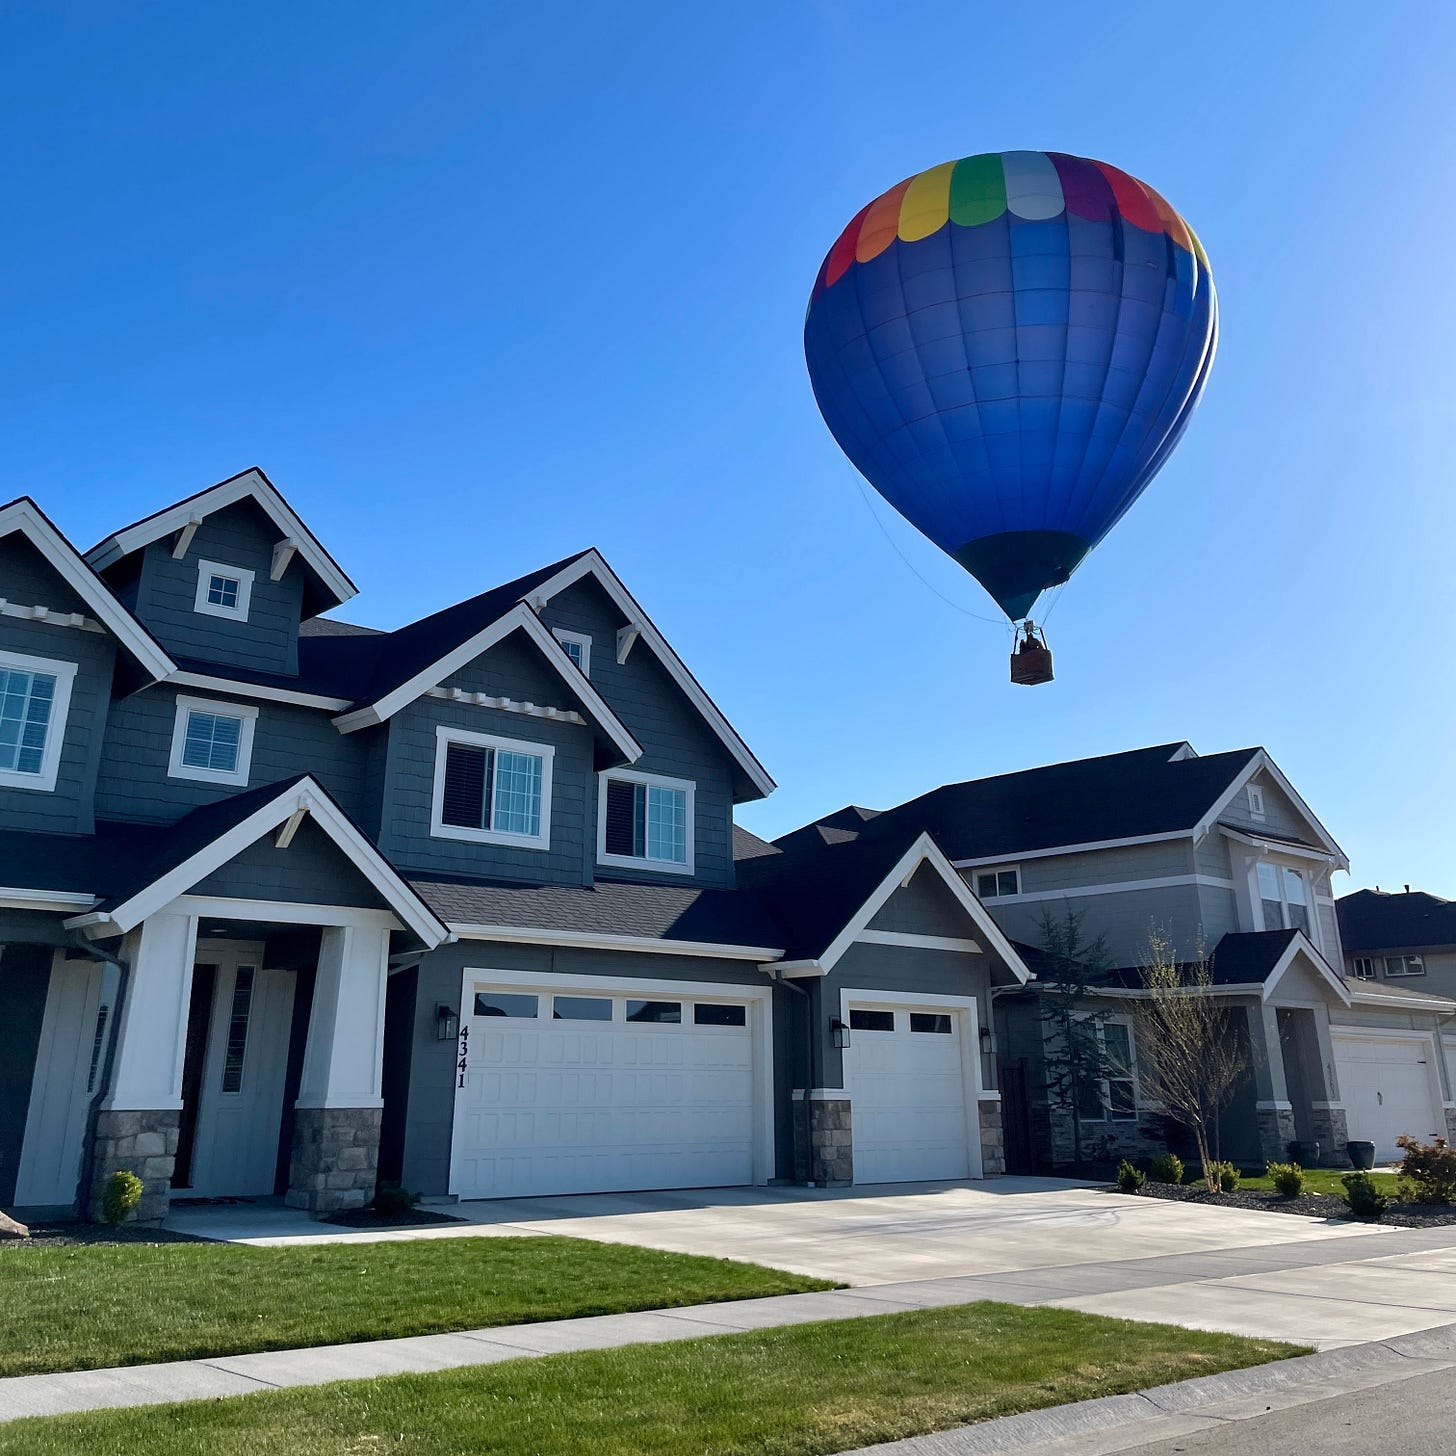 Balloon floating over home